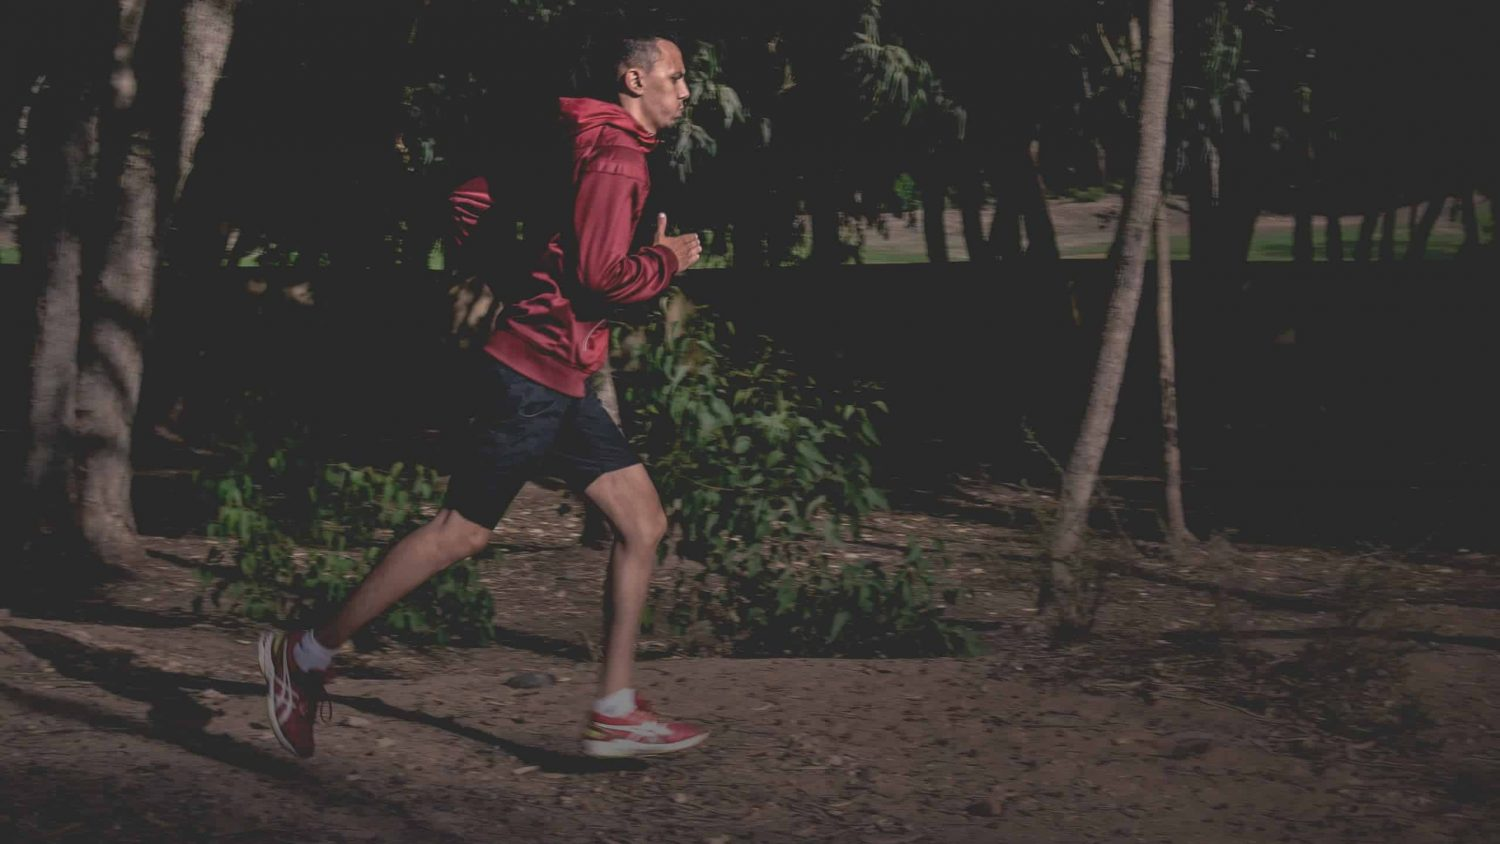 The Best Running Jacket Guide 2021 – Find the Perfect Fit for the Runner in Your Life